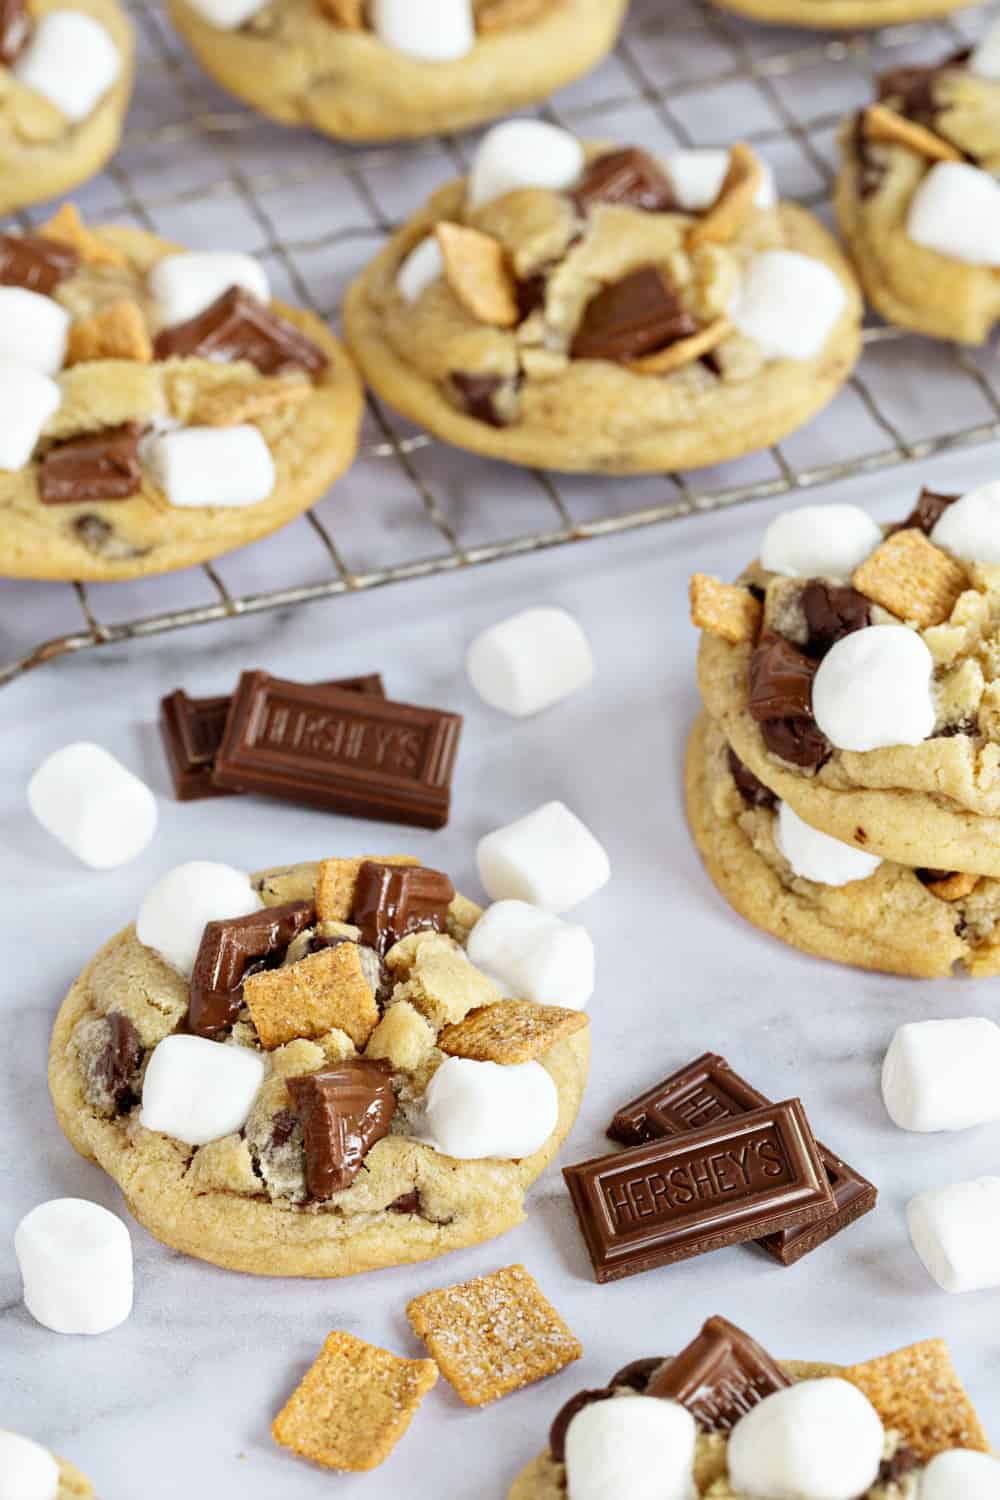 S'mores cookies scattered on a marble surface with mini marshmallows and chocolate pieces